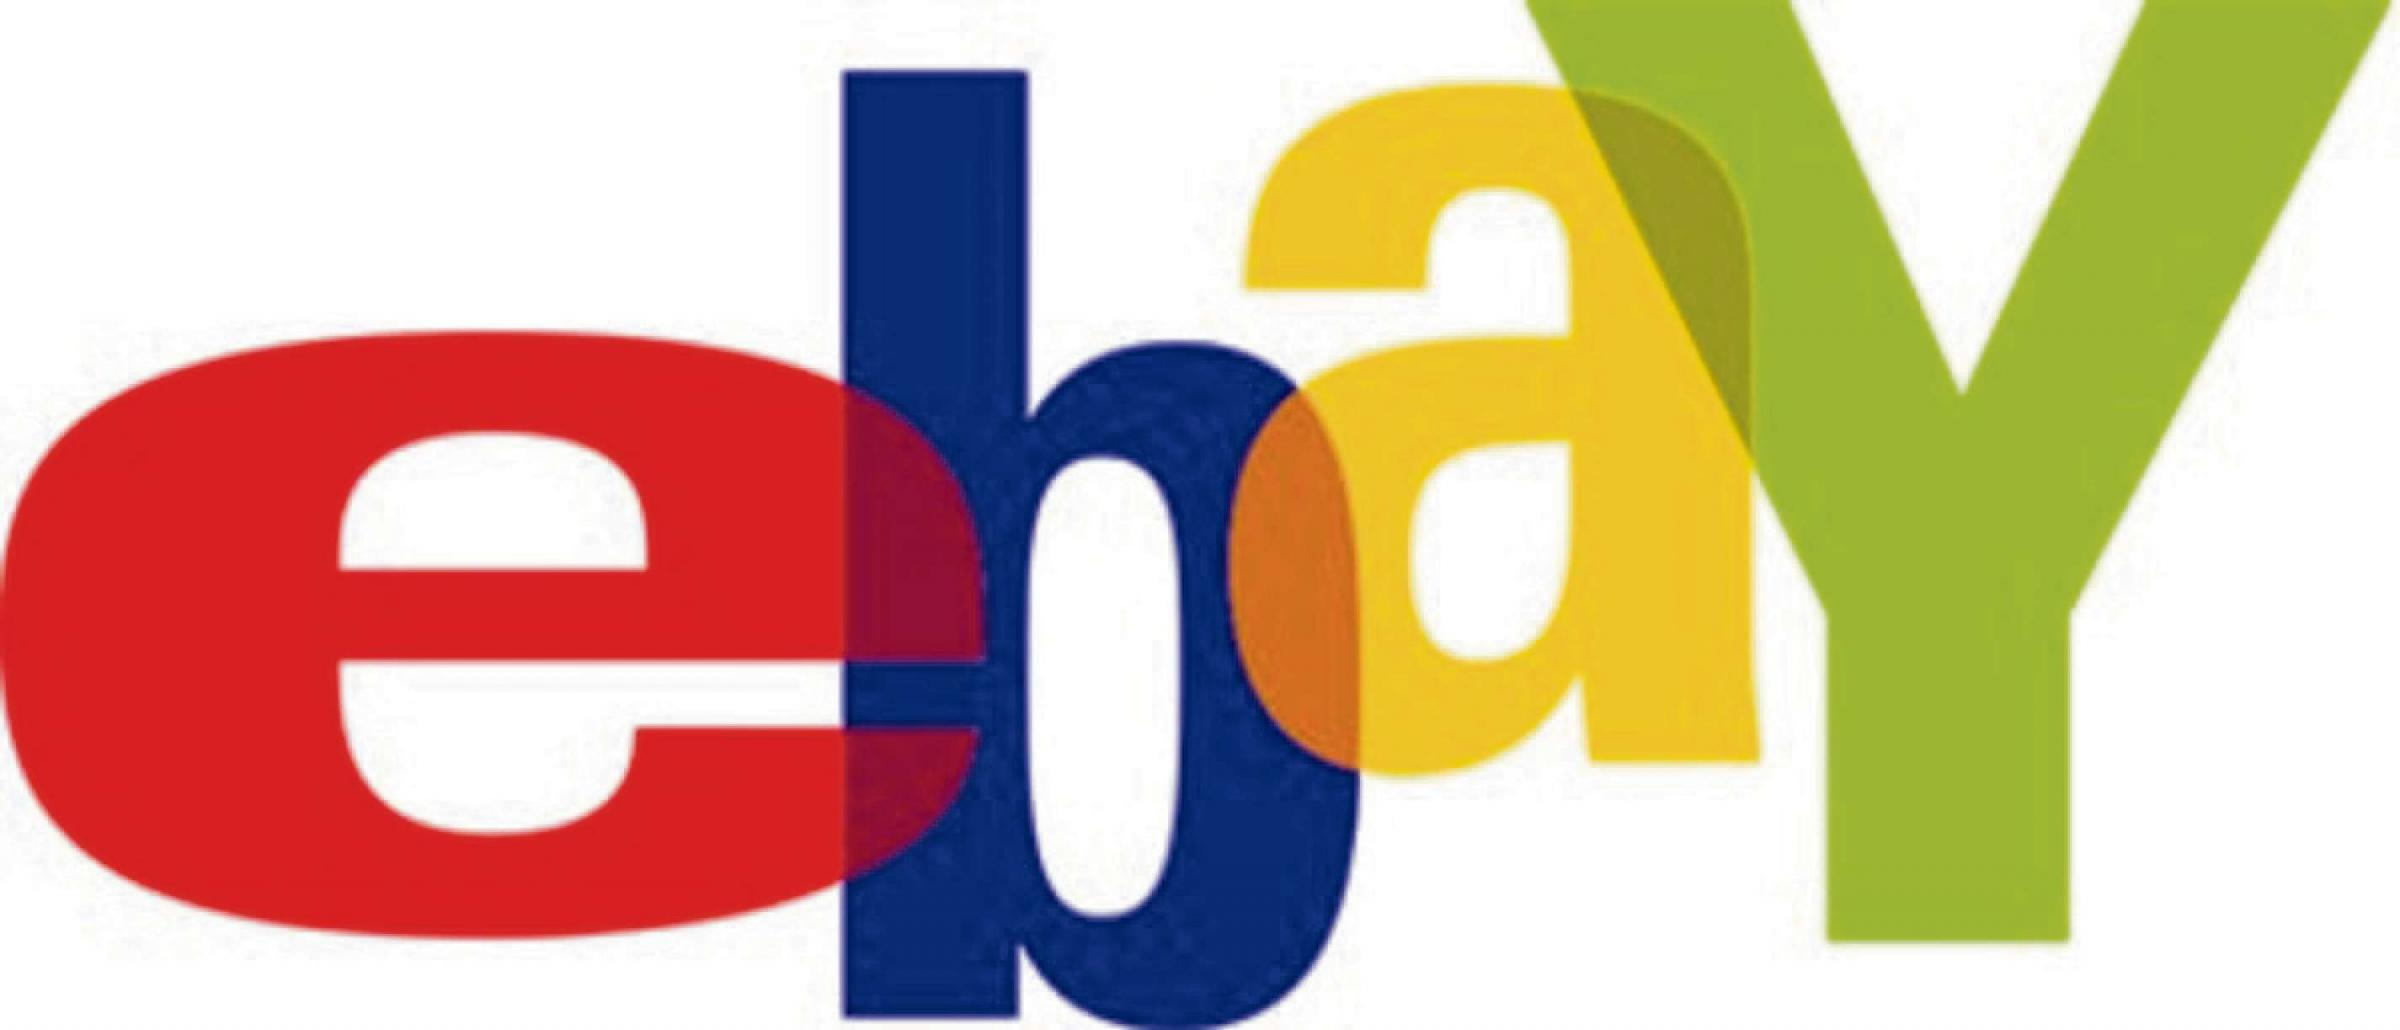 Bromley couple convicted of benefit fraud after running undeclared business on eBay